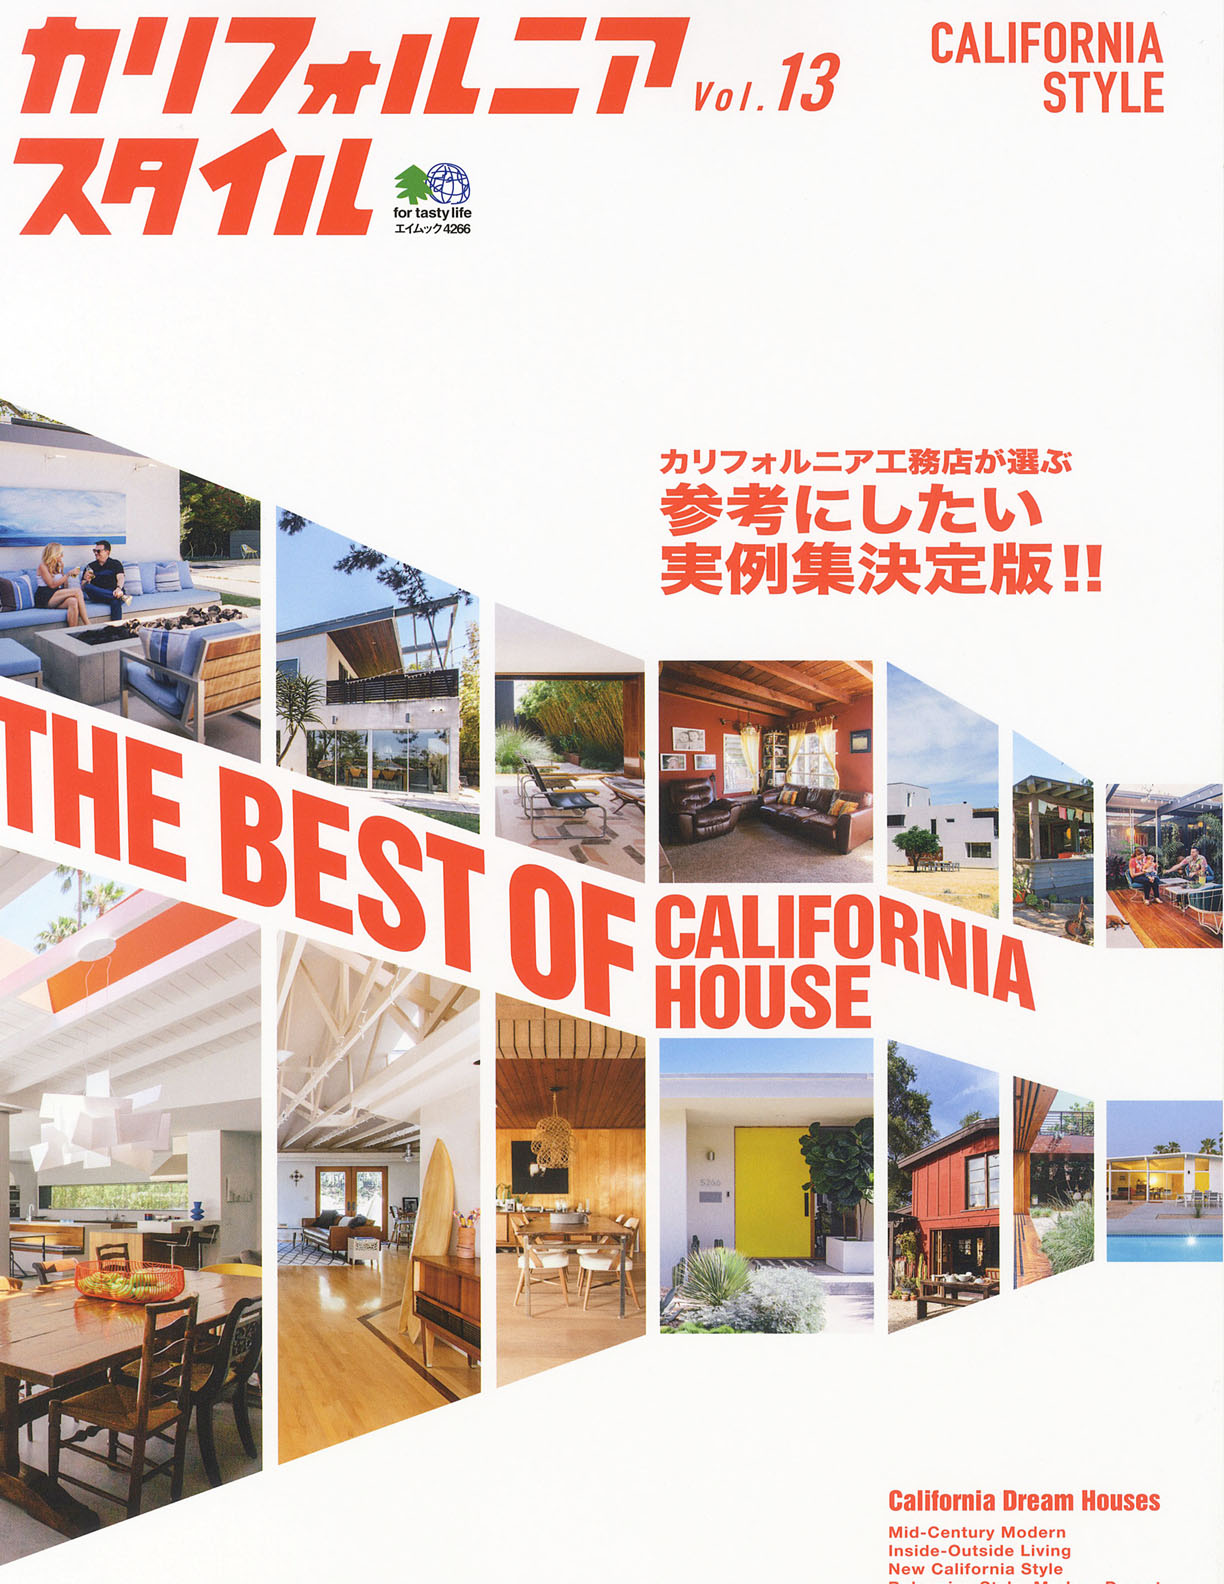 CA STYLE   FEBRUARY 2019  Japanese Edition. The Best of California House.